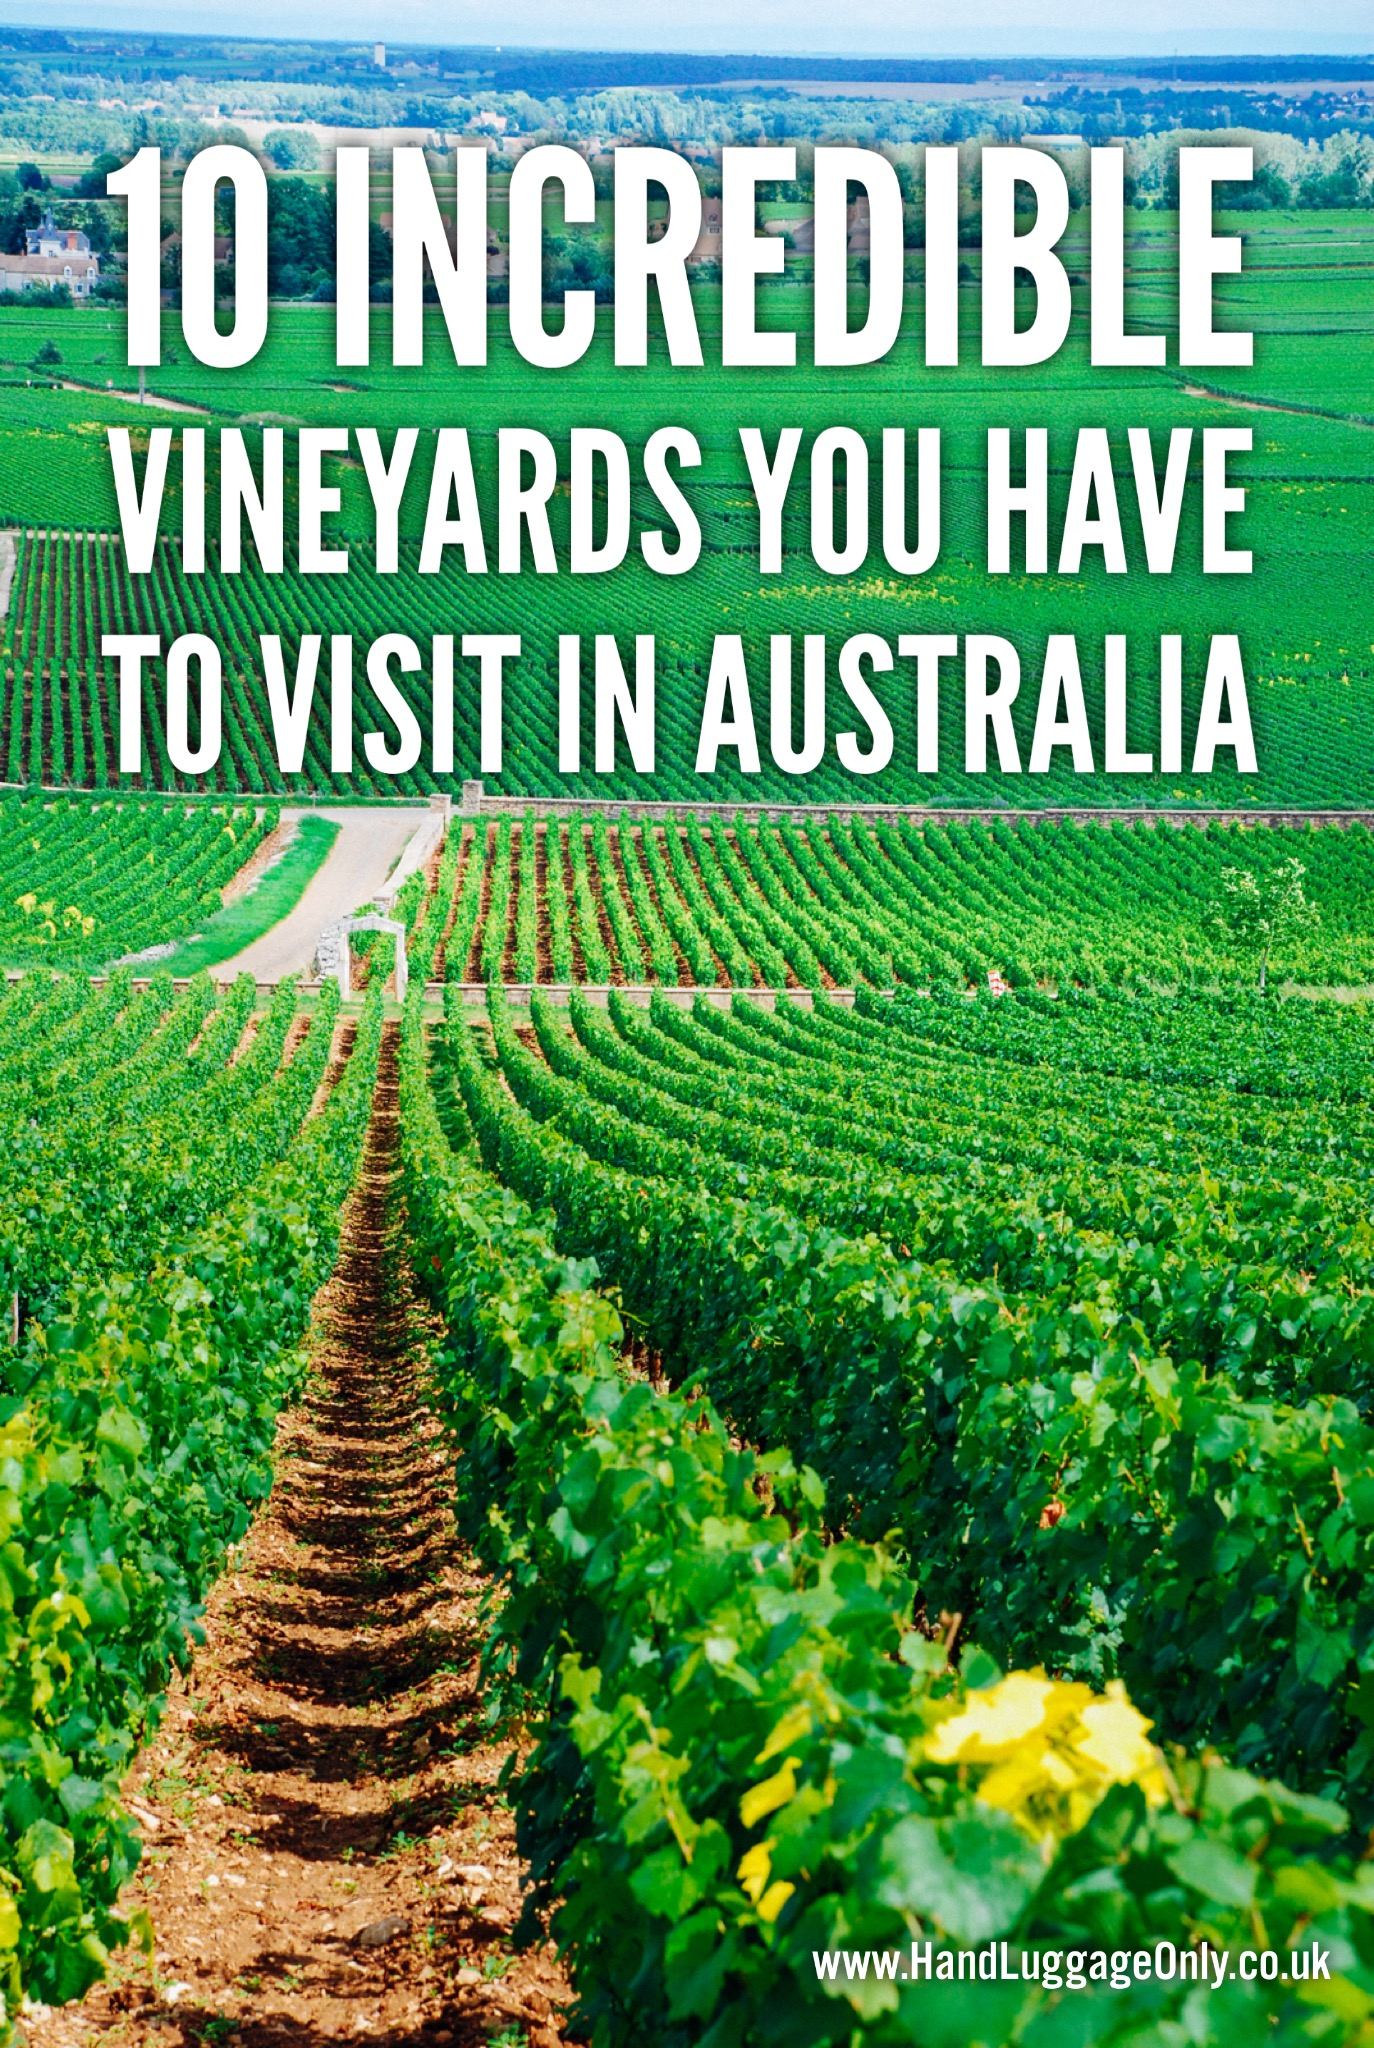 10 Incredible Vineyards You Have To Visit In Australia (1)